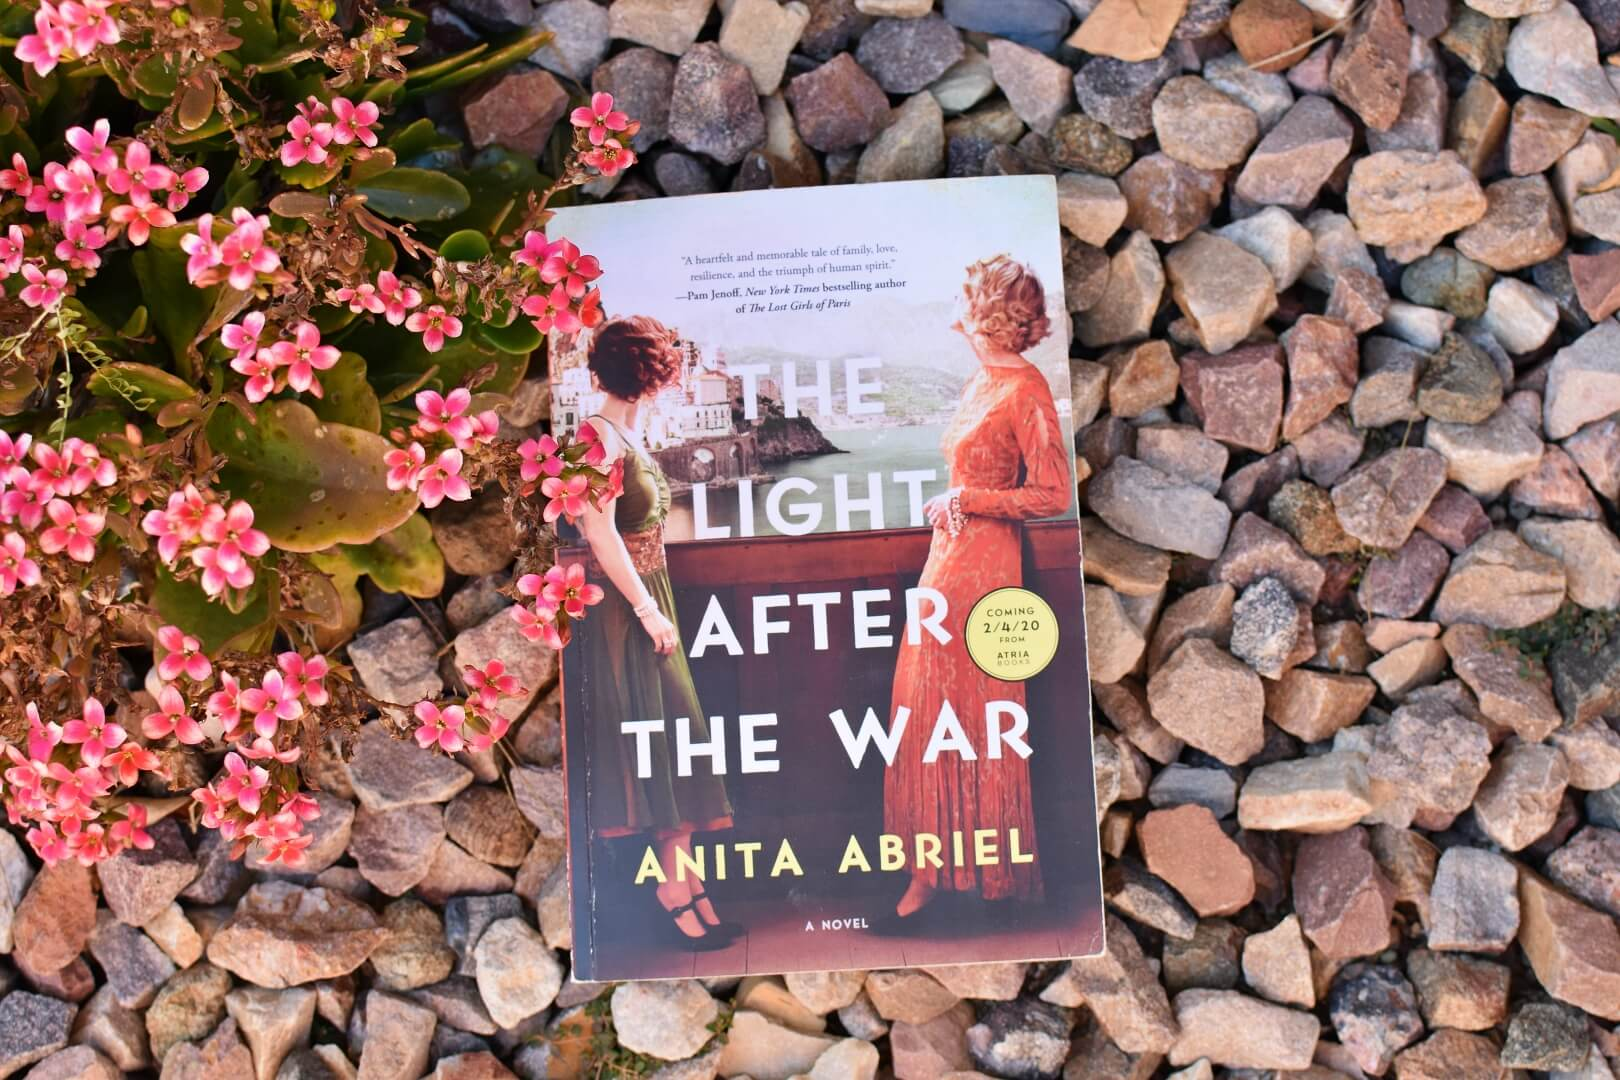 the light after war review - book club chat